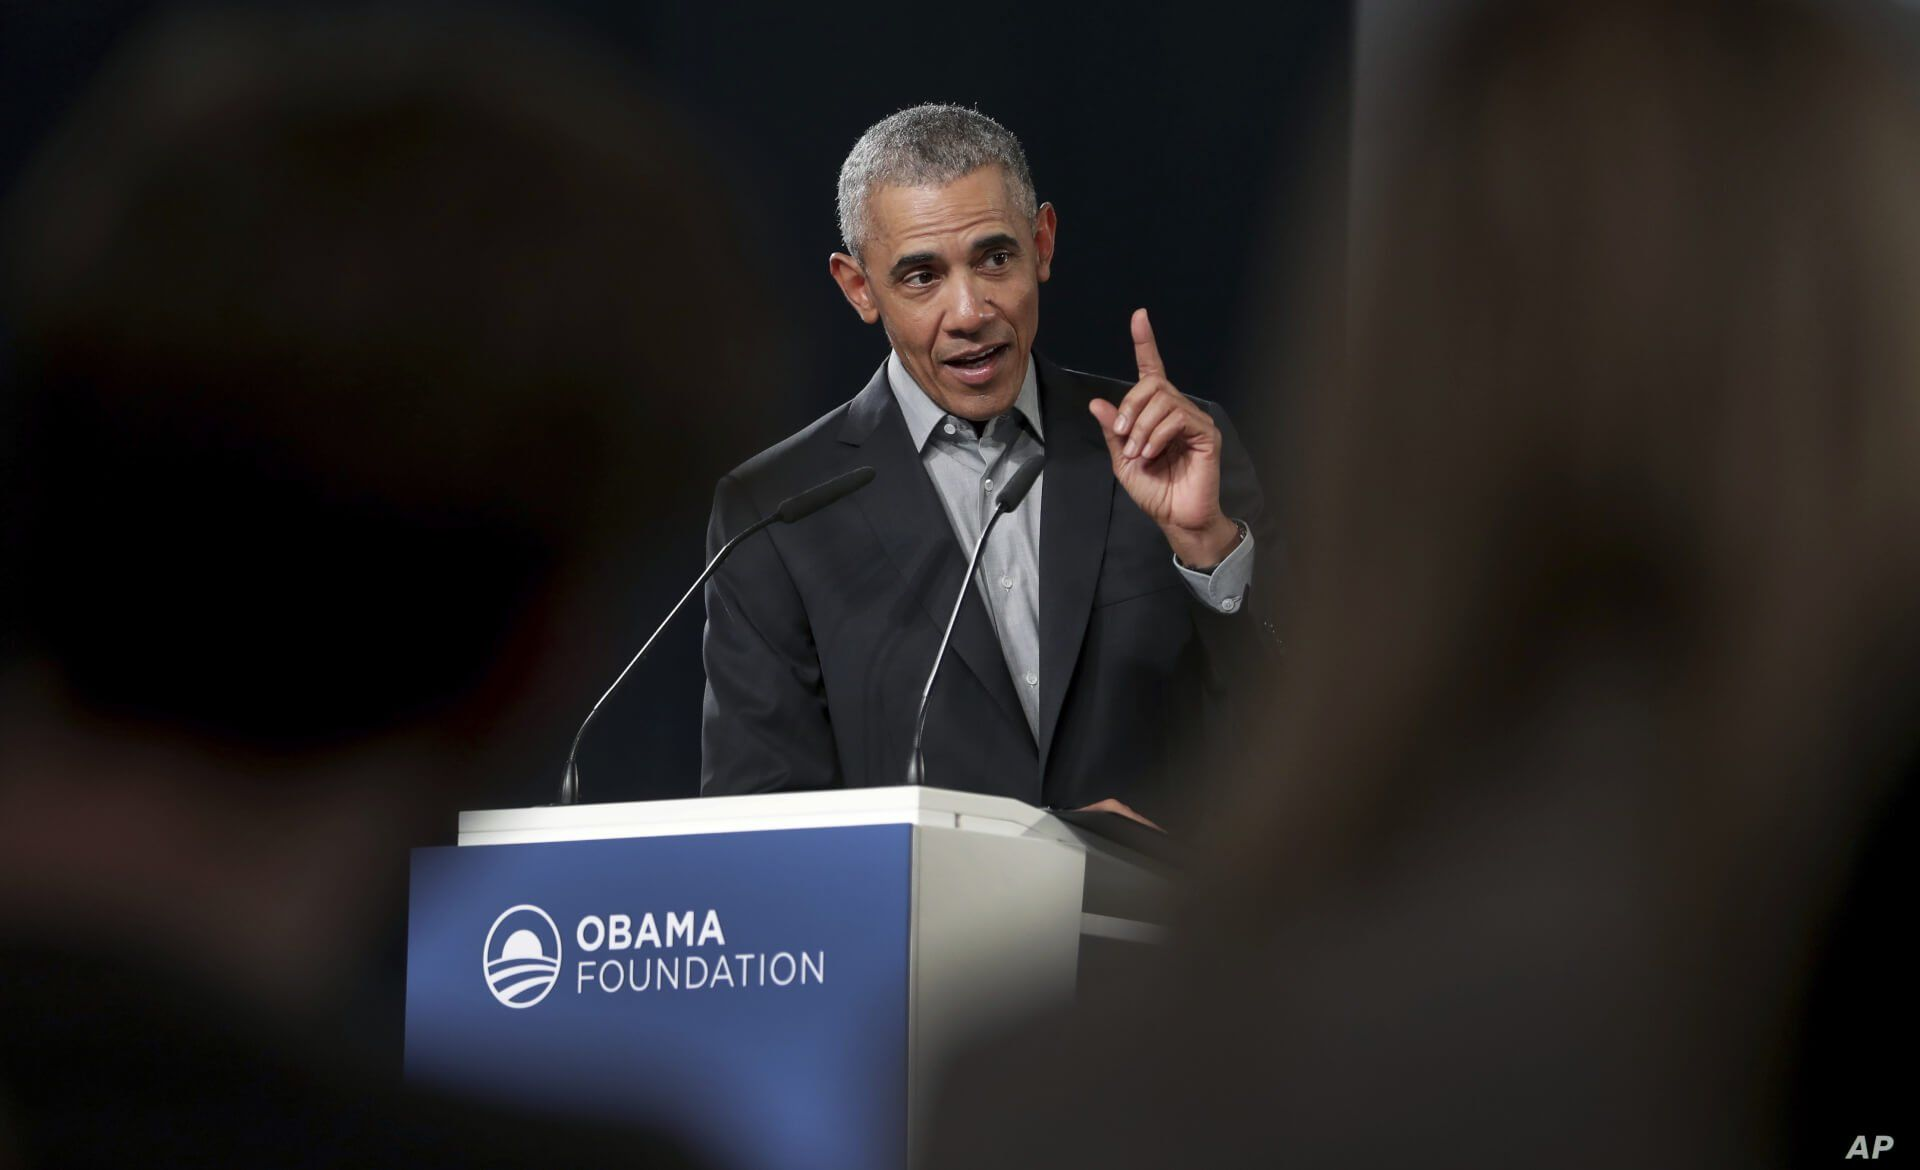 FILE - Former U.S. President Barack Obama gestures as he speaks during a town hall meeting at the European School For Management And Technology in Berlin, Germany, April 6, 2019.